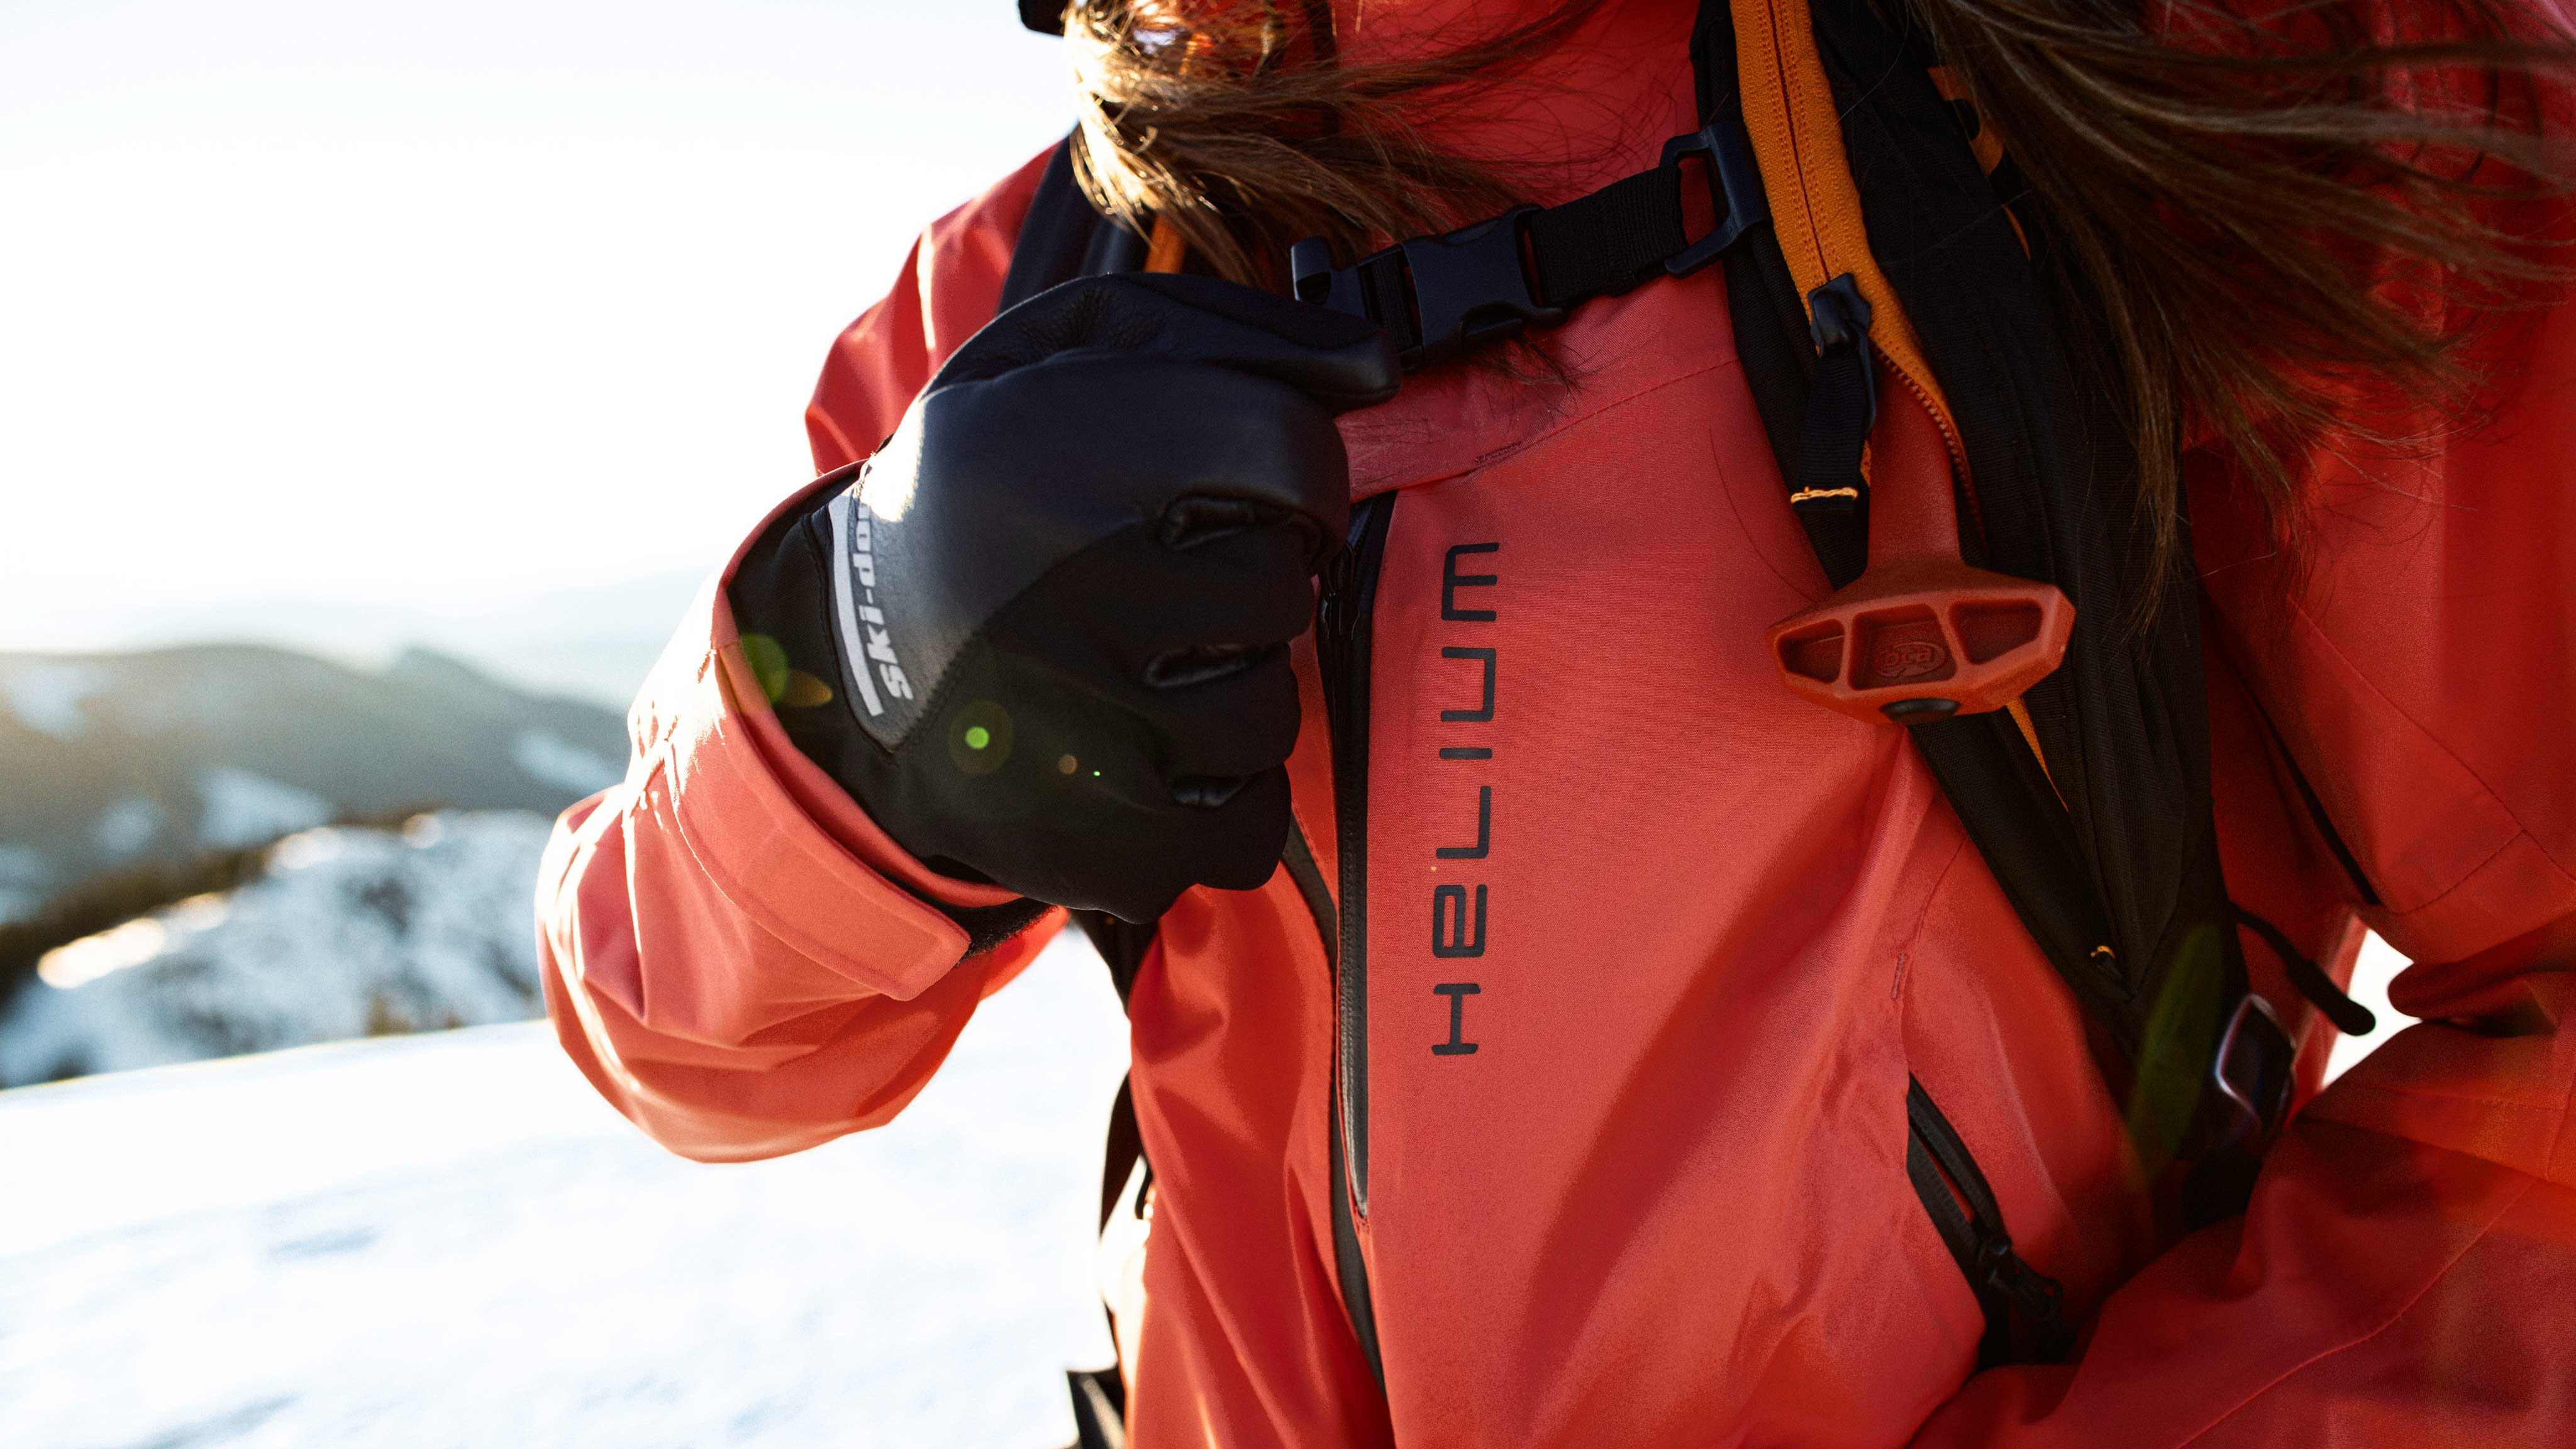 2022 Ski-Doo Helium snowmobile jacket